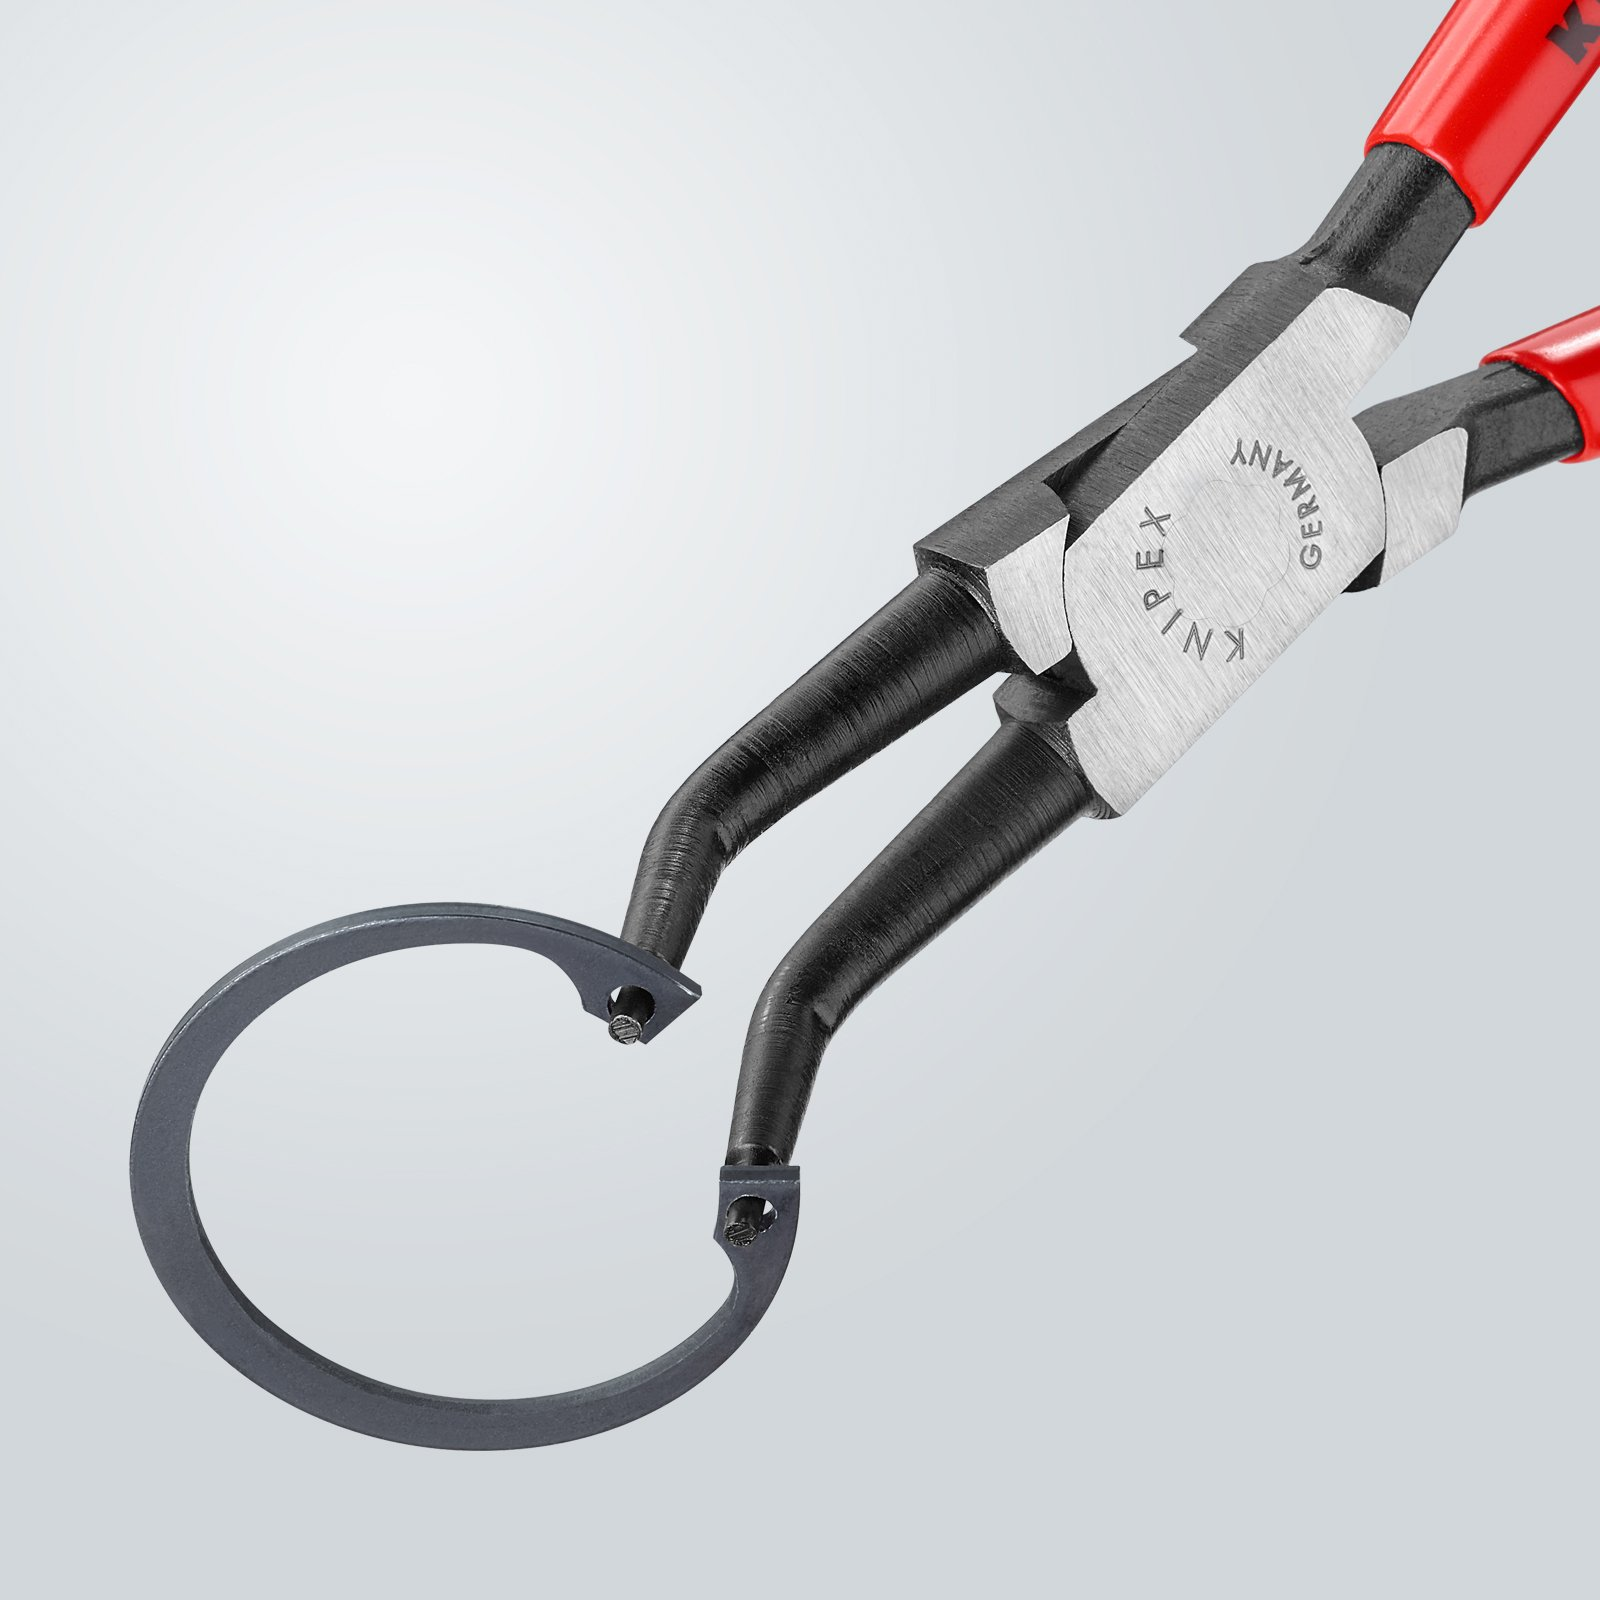 Knipex 44 31 J32 40-100mm 45° angled Circlip Pliers by KNIPEX Tools